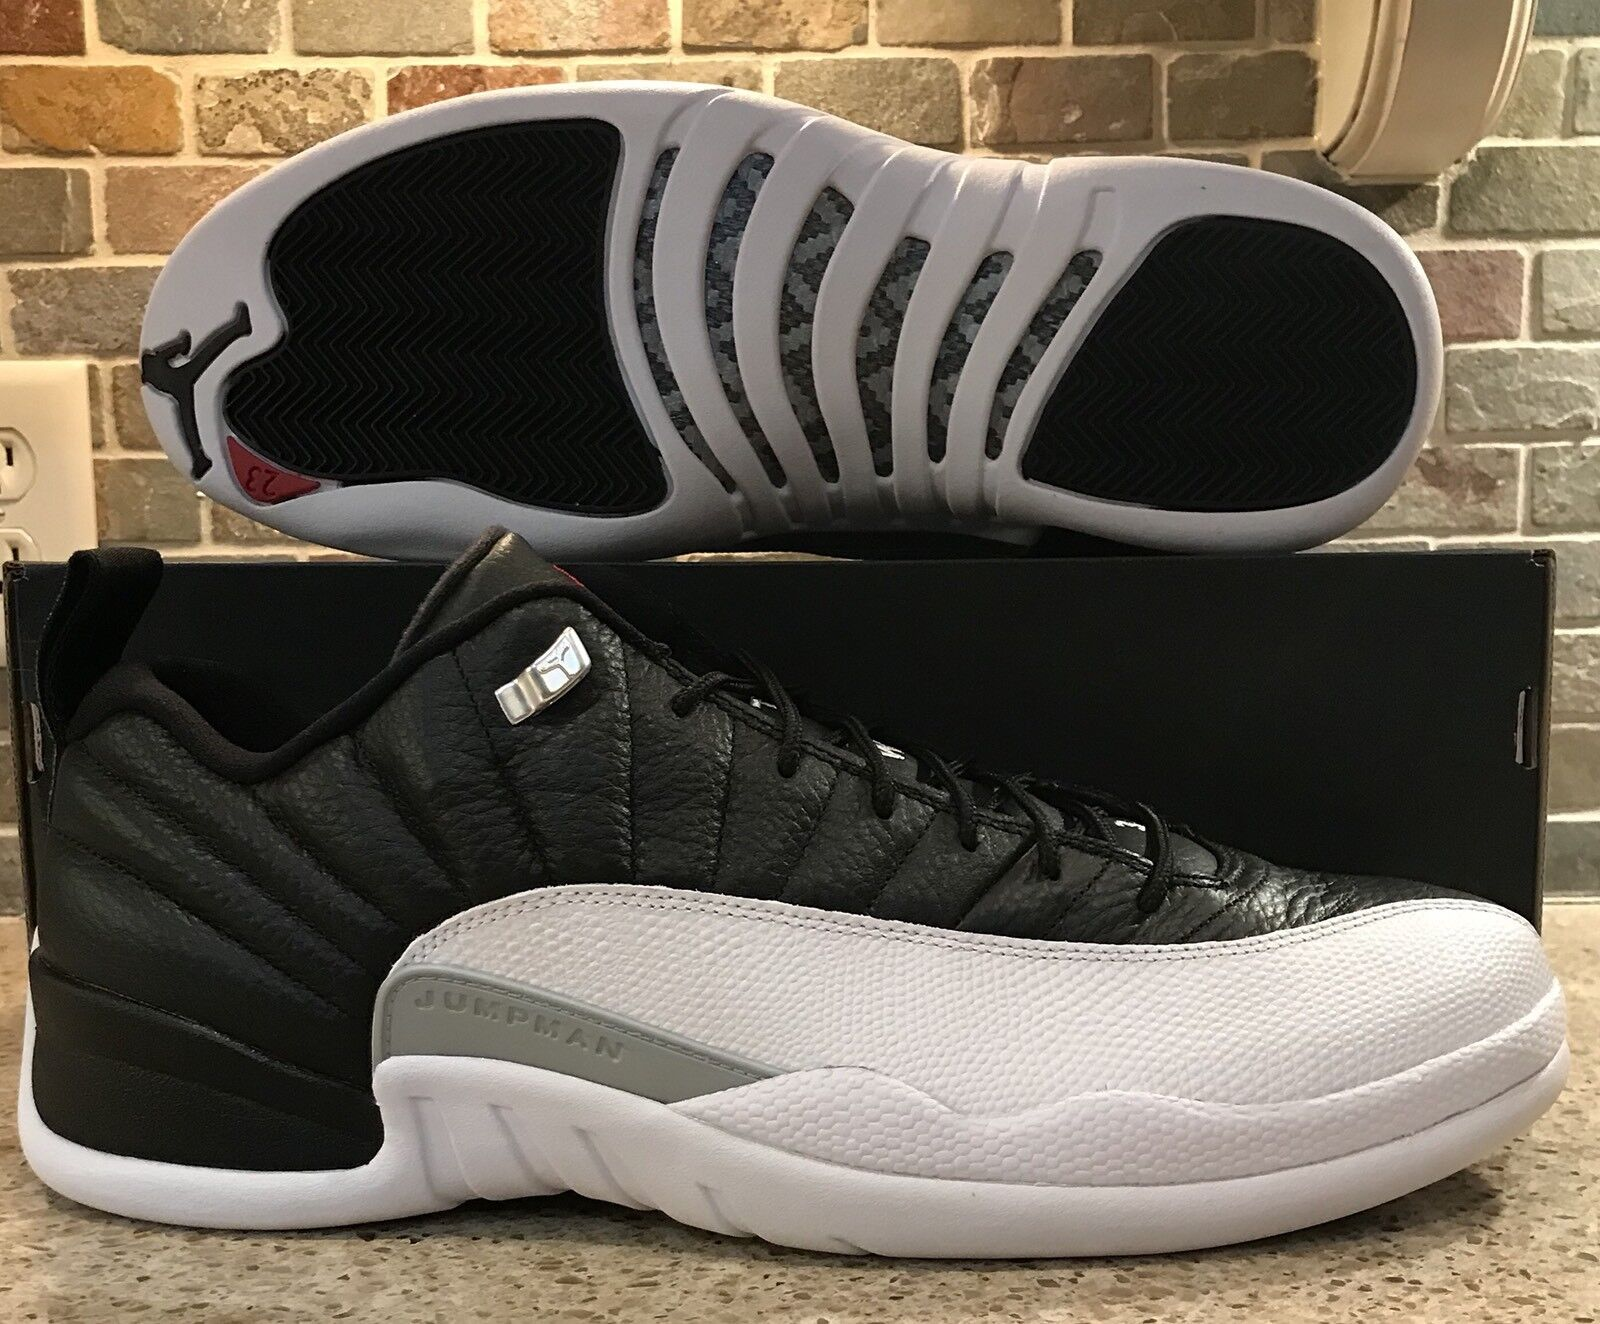 d478926ad1b Nike Air Jordan 12 Retro Low Playoffs Black Red Mens Sz 15 308317 004 White  NWB nyrvkv2482-Athletic Shoes